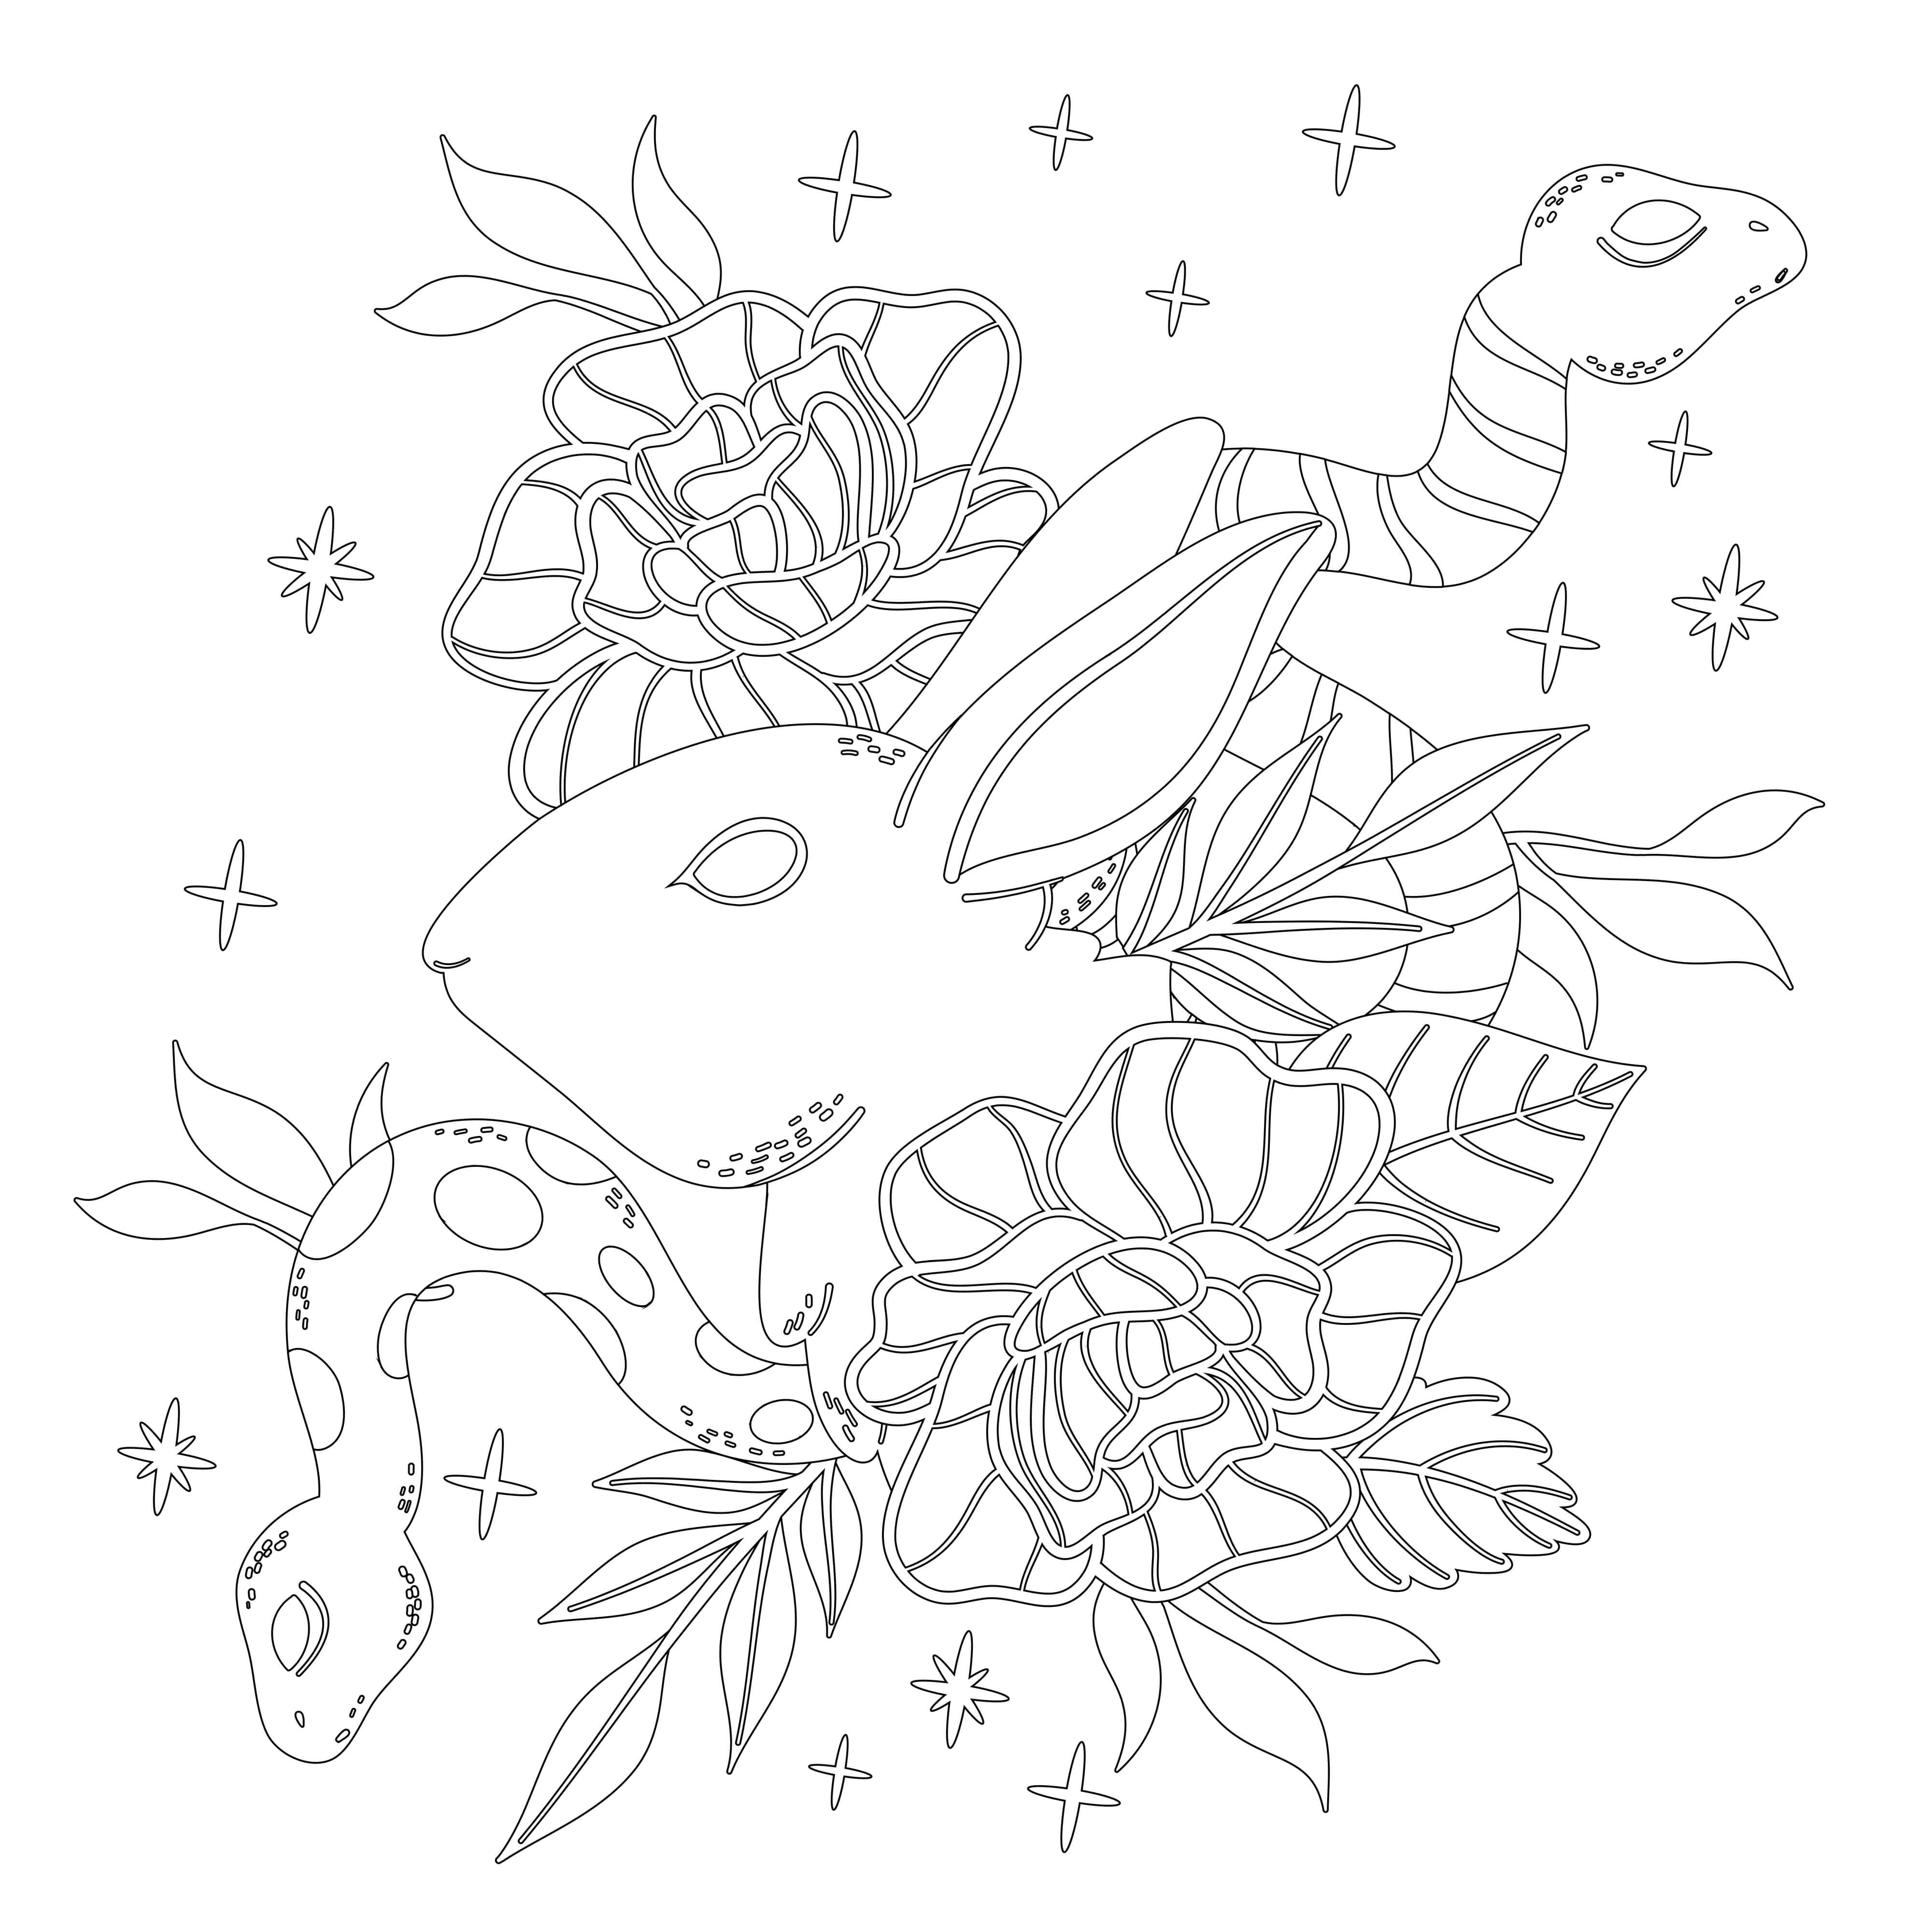 Snake Eyes coloring pages for adults